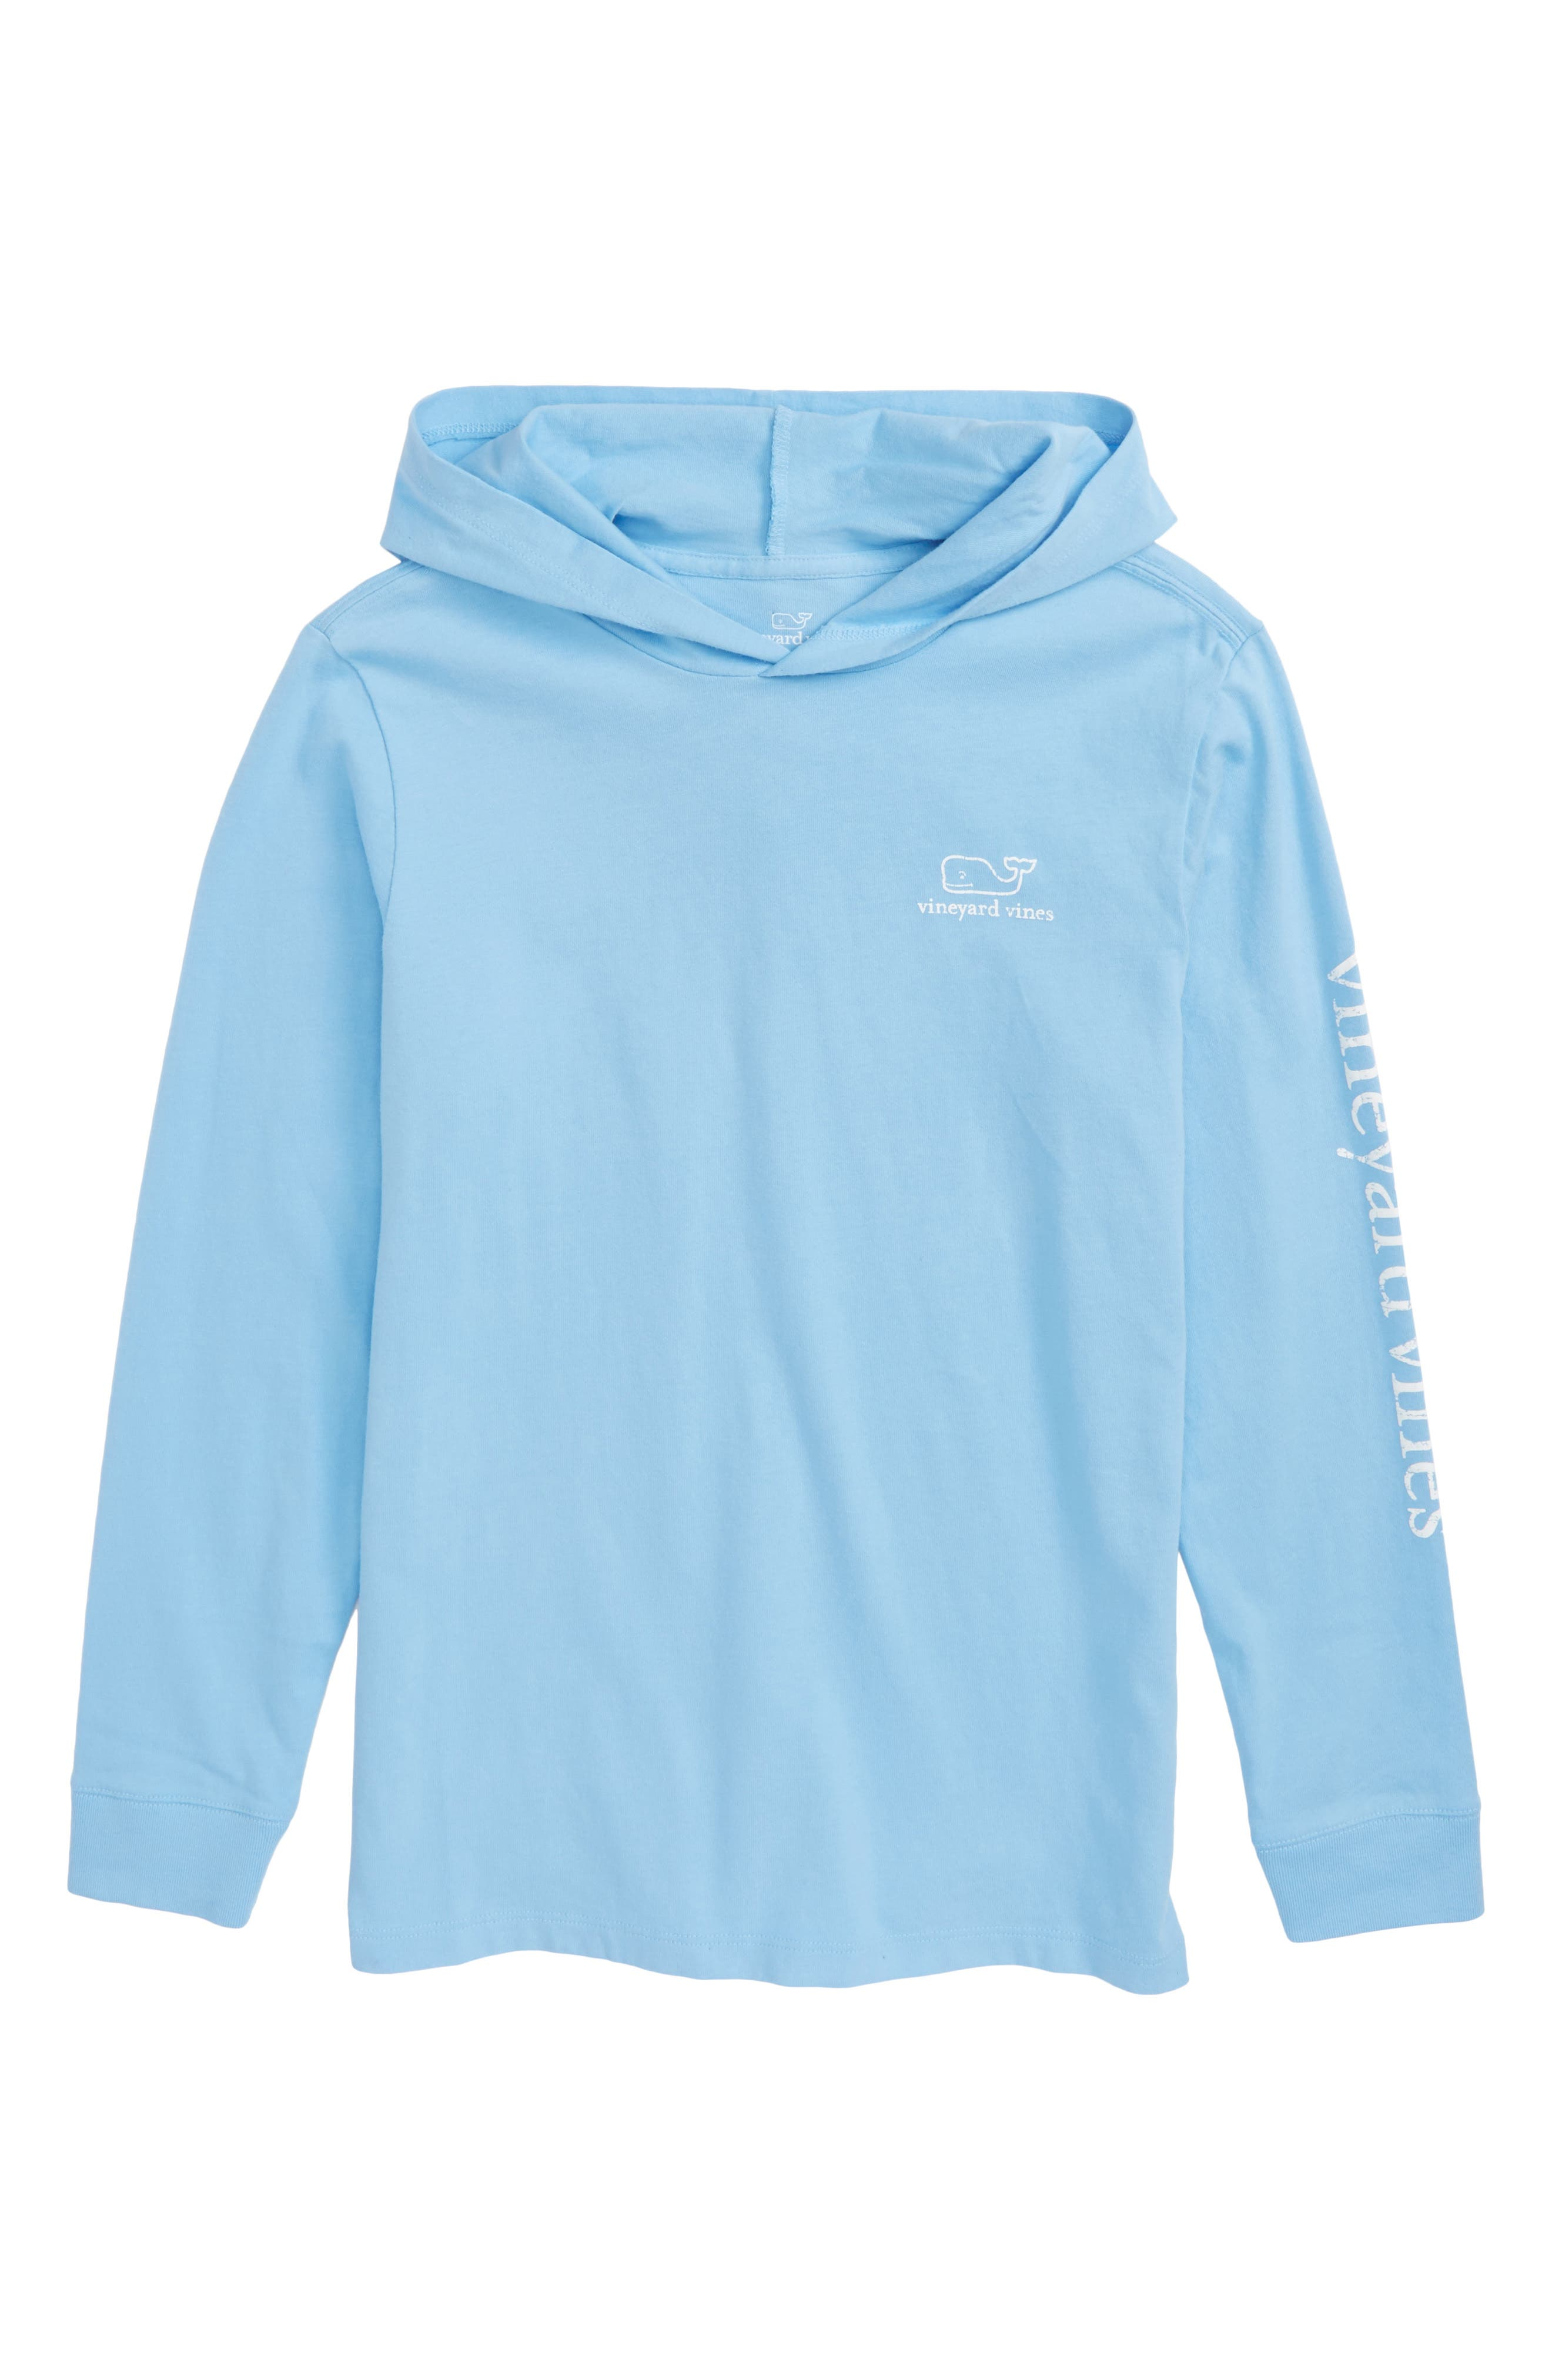 Performance Hooded Pullover,                         Main,                         color, Ocean Breeze